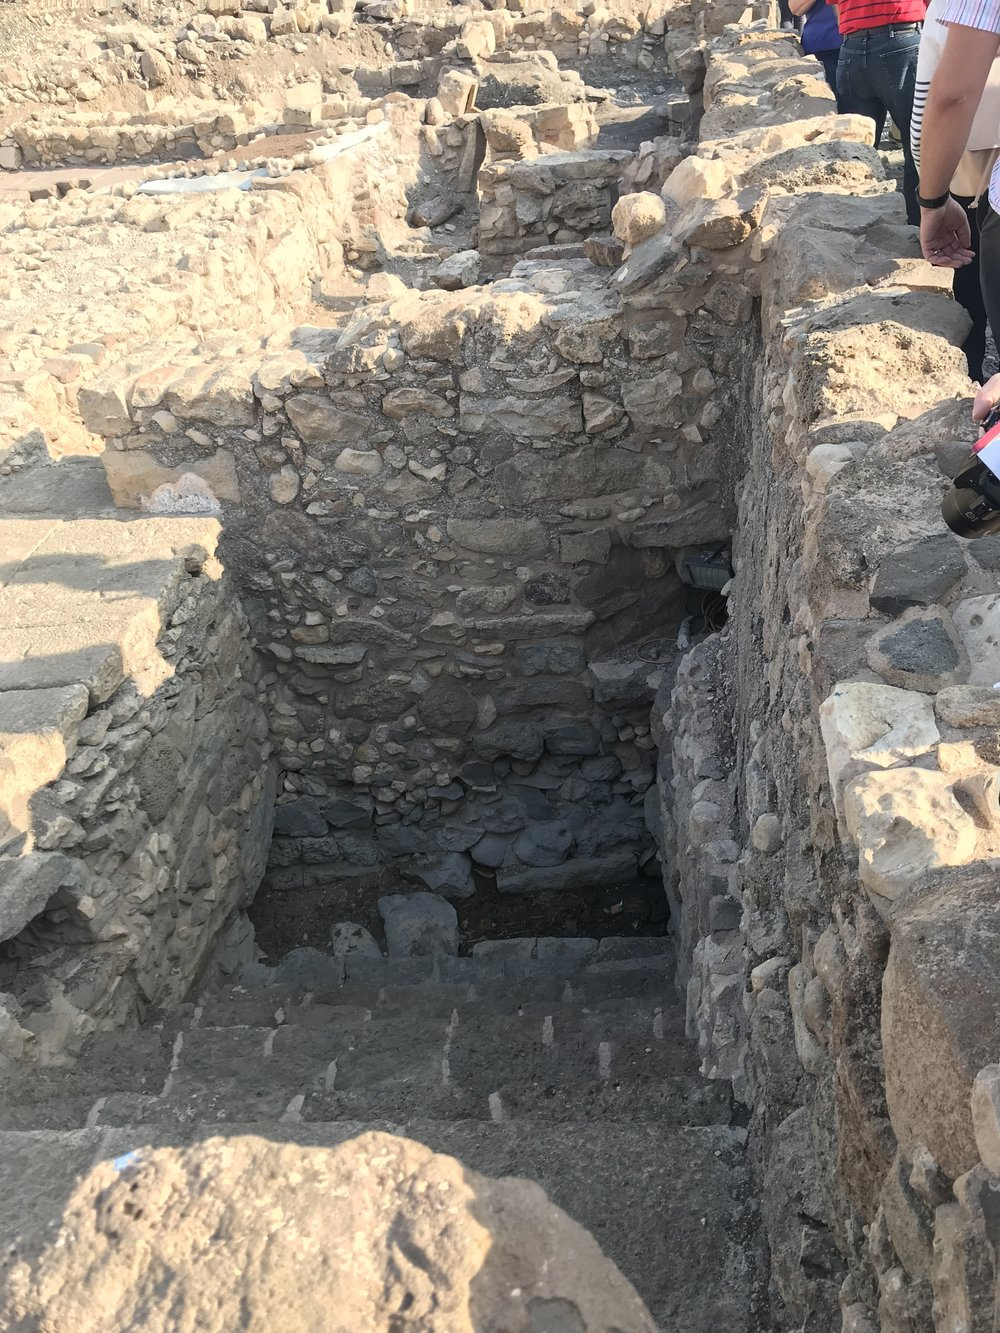 First century mikveh (ritual bath) at Magdala